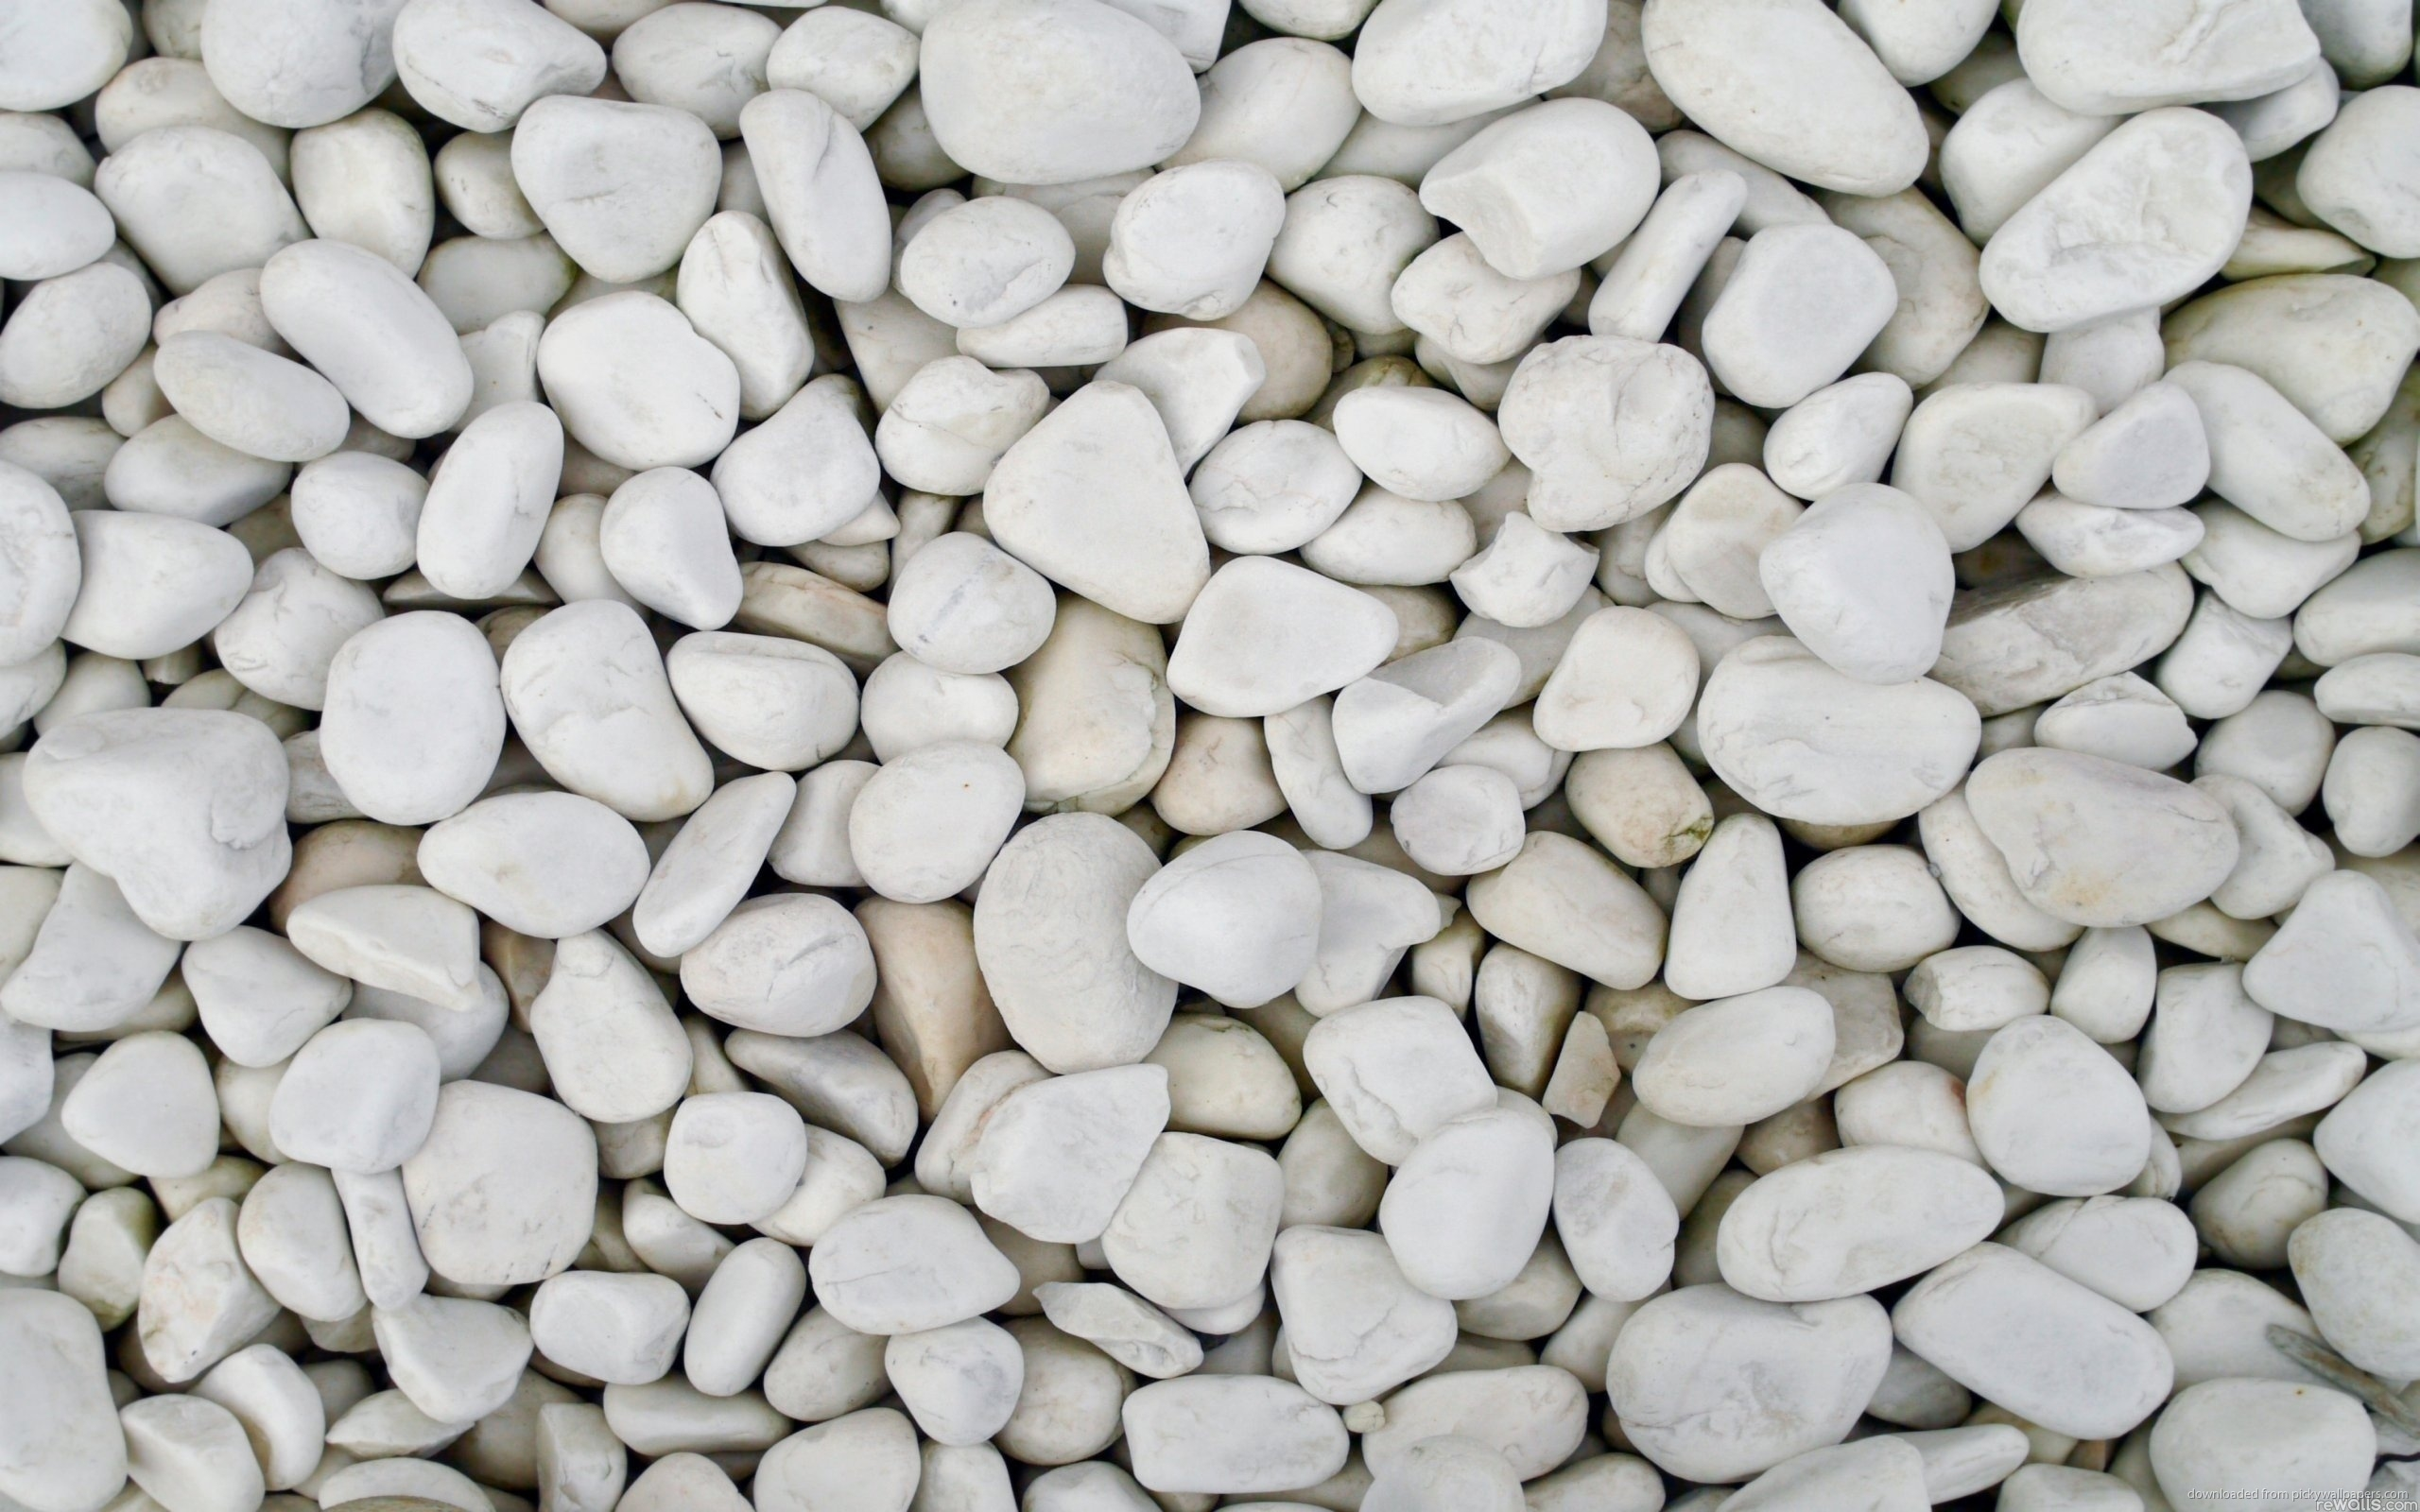 White Pebbles for 2560 x 1600 widescreen resolution